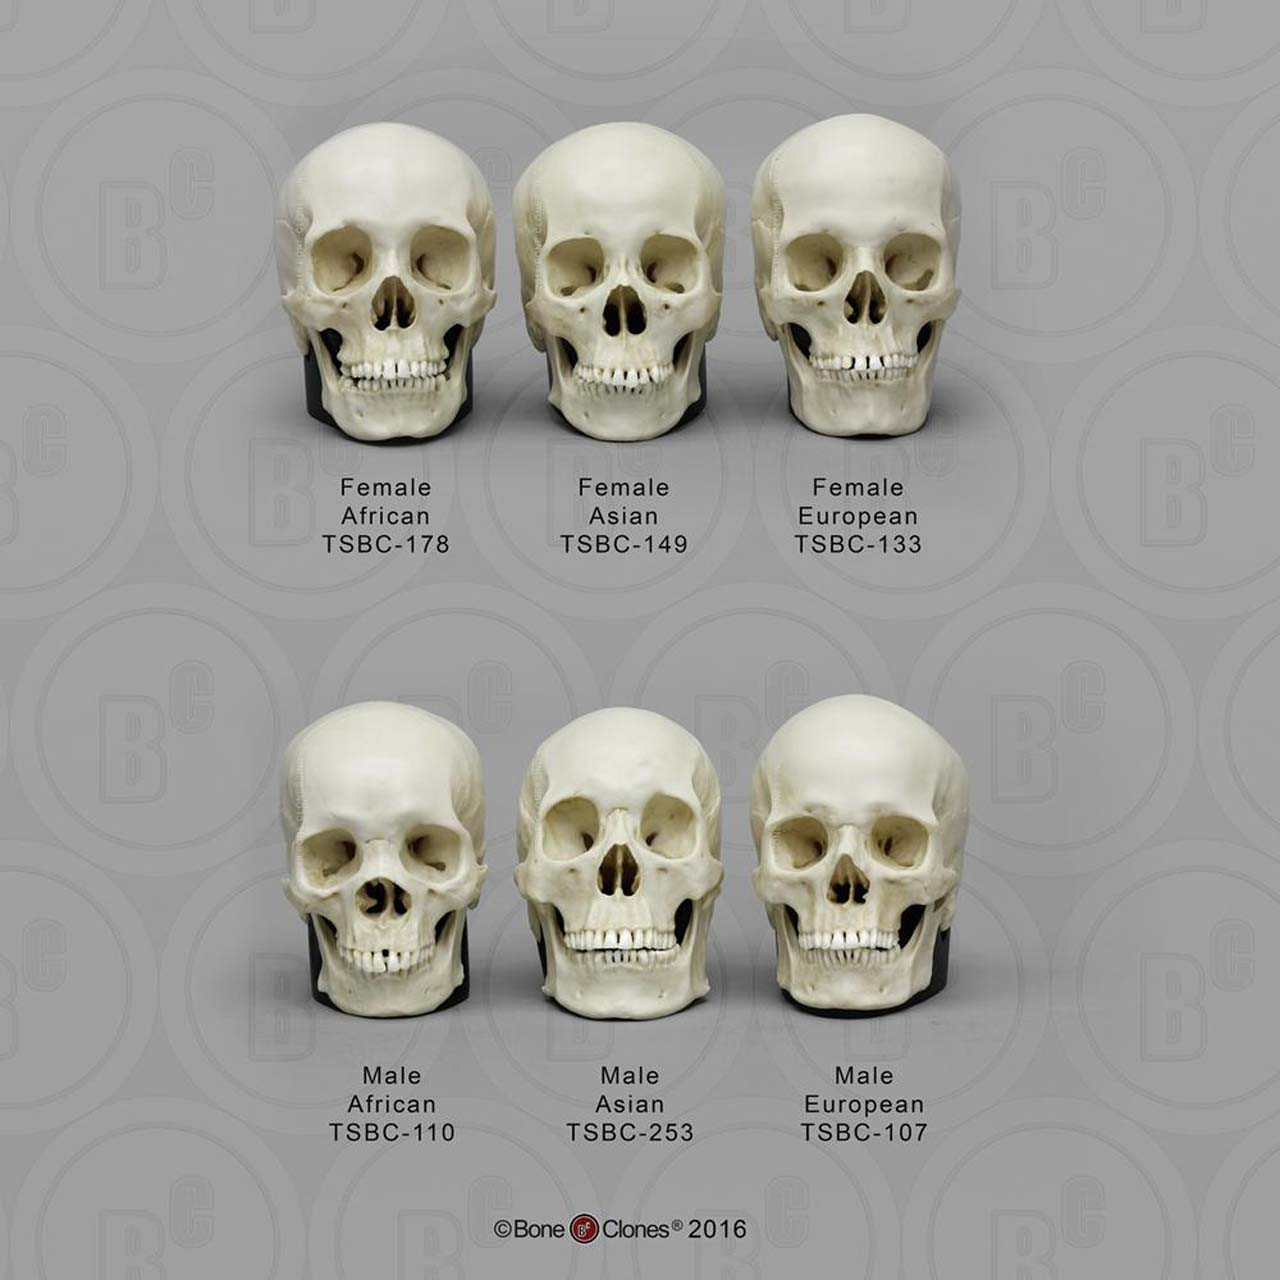 Ancestry half scale set of 6 human skulls, male and female of Asian, European and African American, with individual bases